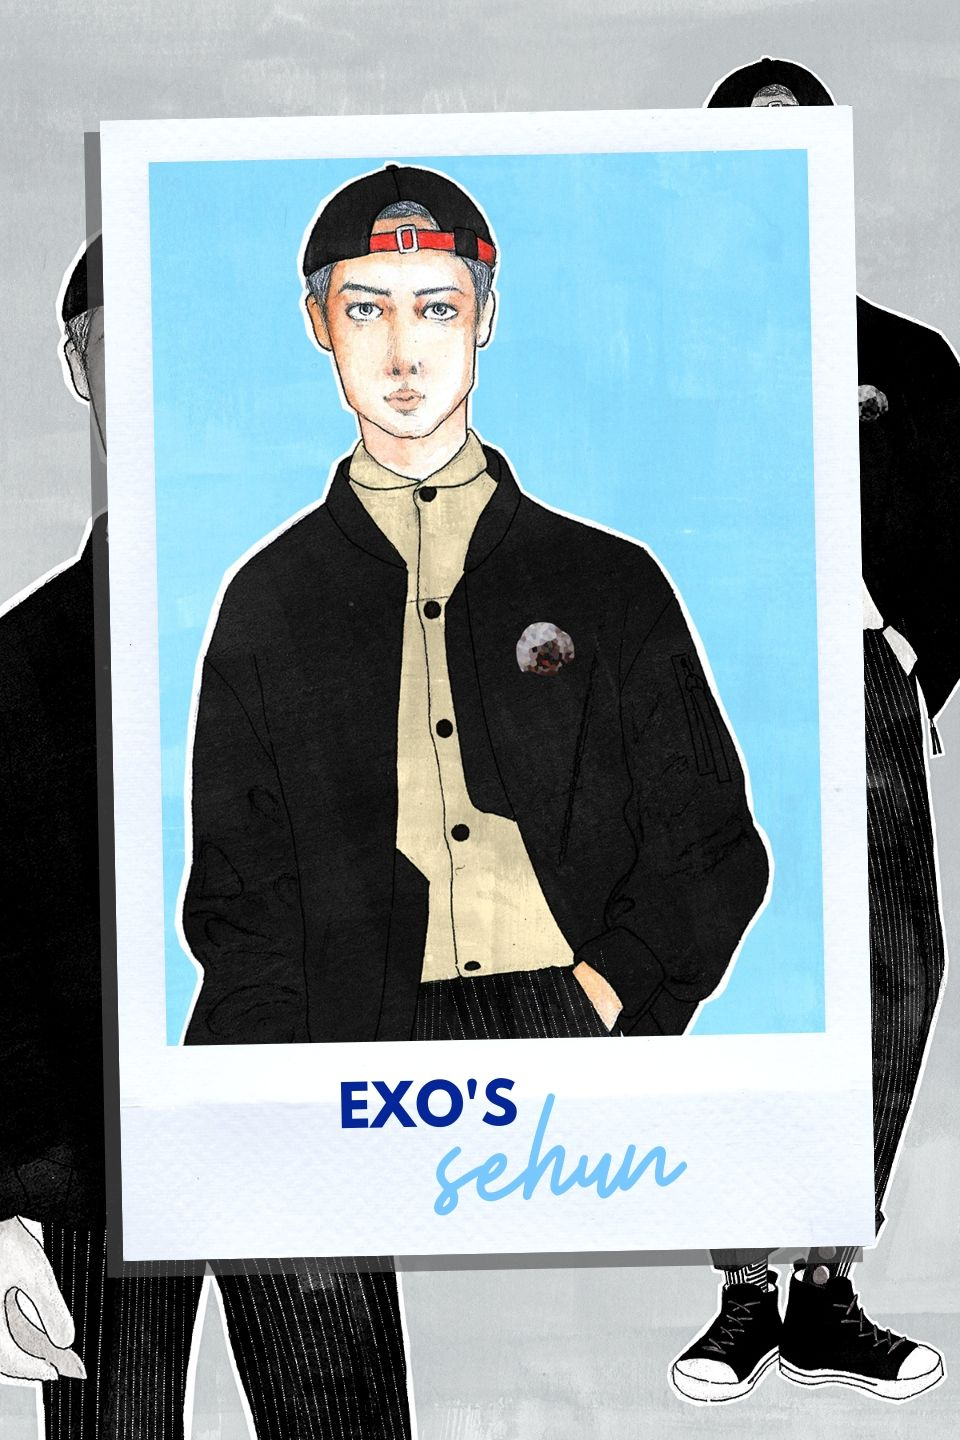 Mixed media portrait illustration of Sehun from EXO in an all black outfit on a polaroid